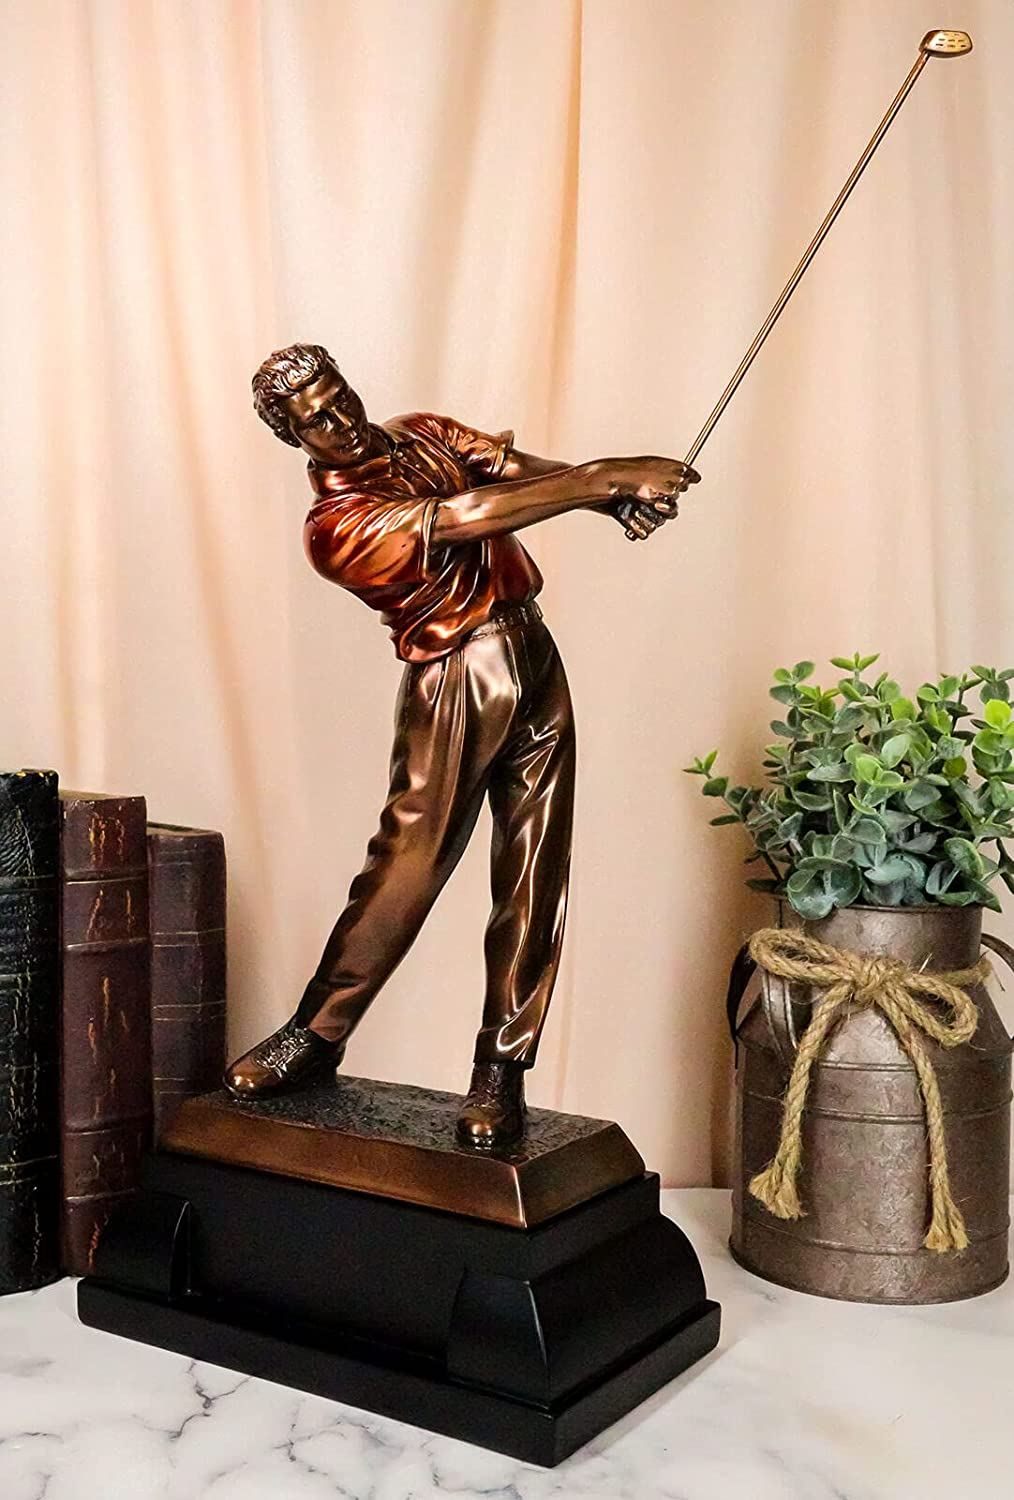 Zen Pro Golfer Swinging Shipping included Golf Trop Electroplated Club Max 49% OFF with Bronze